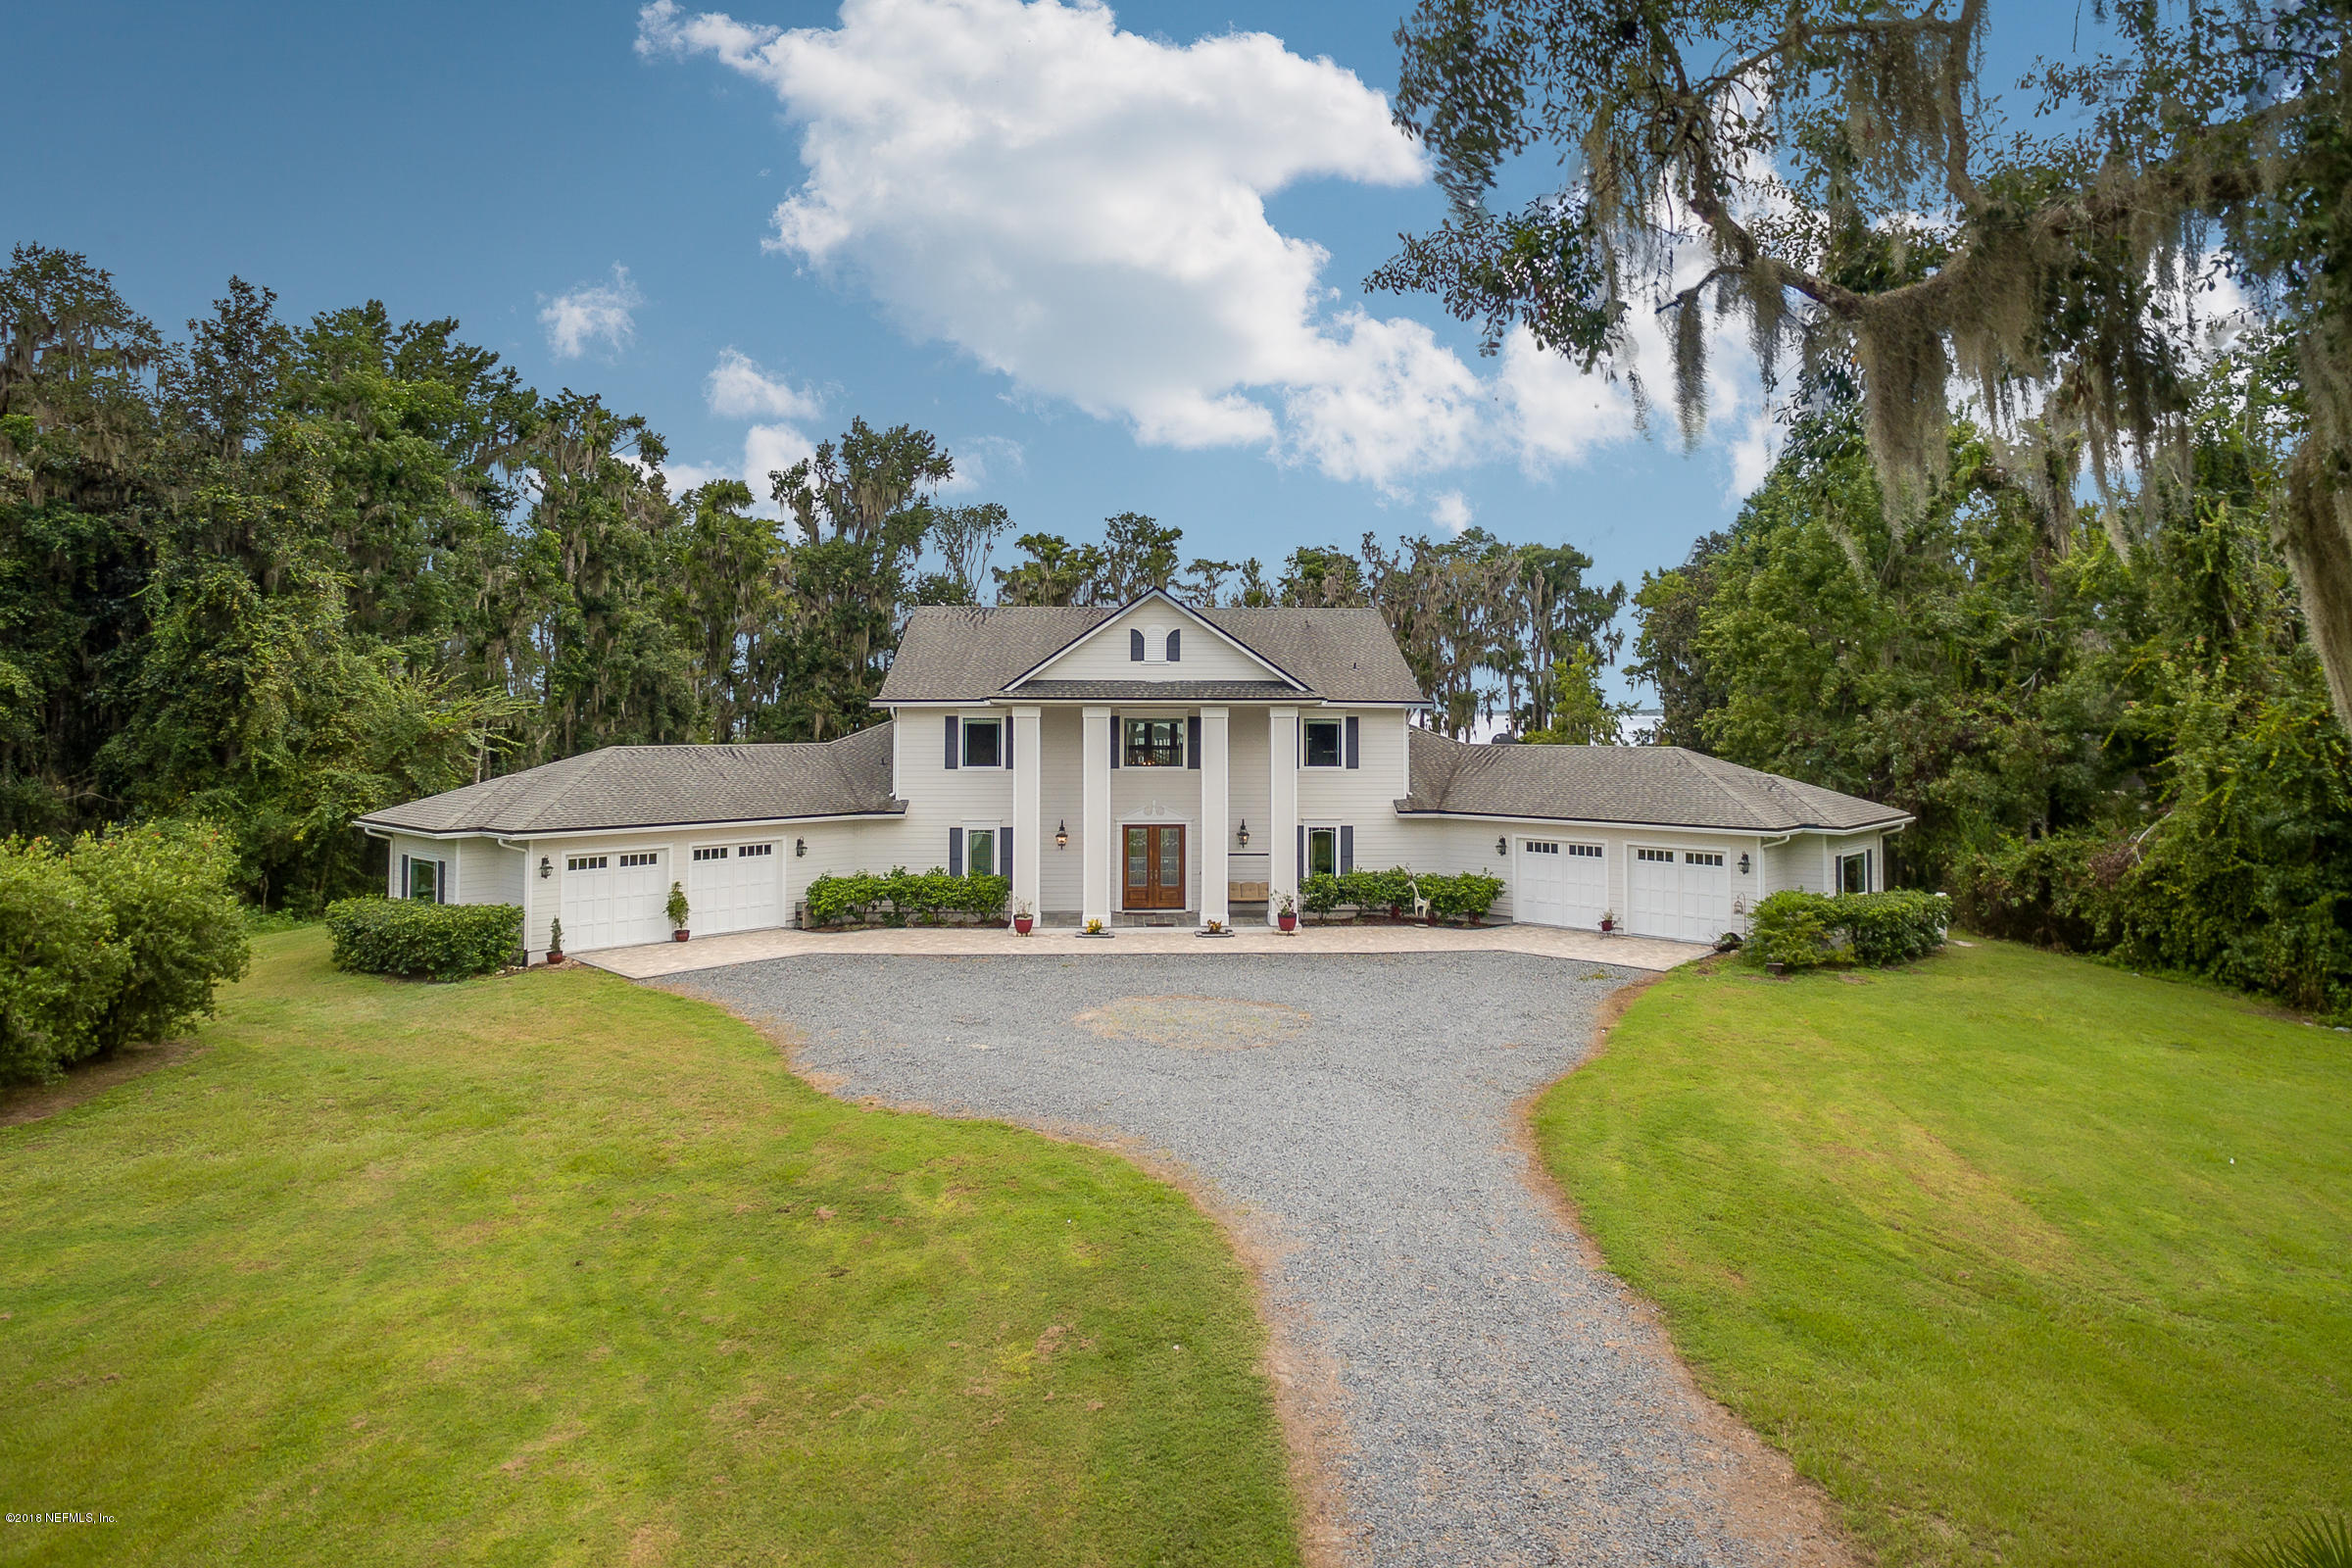 2245 COUNTY ROAD 13, ELKTON, FLORIDA 32033, 4 Bedrooms Bedrooms, ,5 BathroomsBathrooms,Residential - single family,For sale,COUNTY ROAD 13,955032